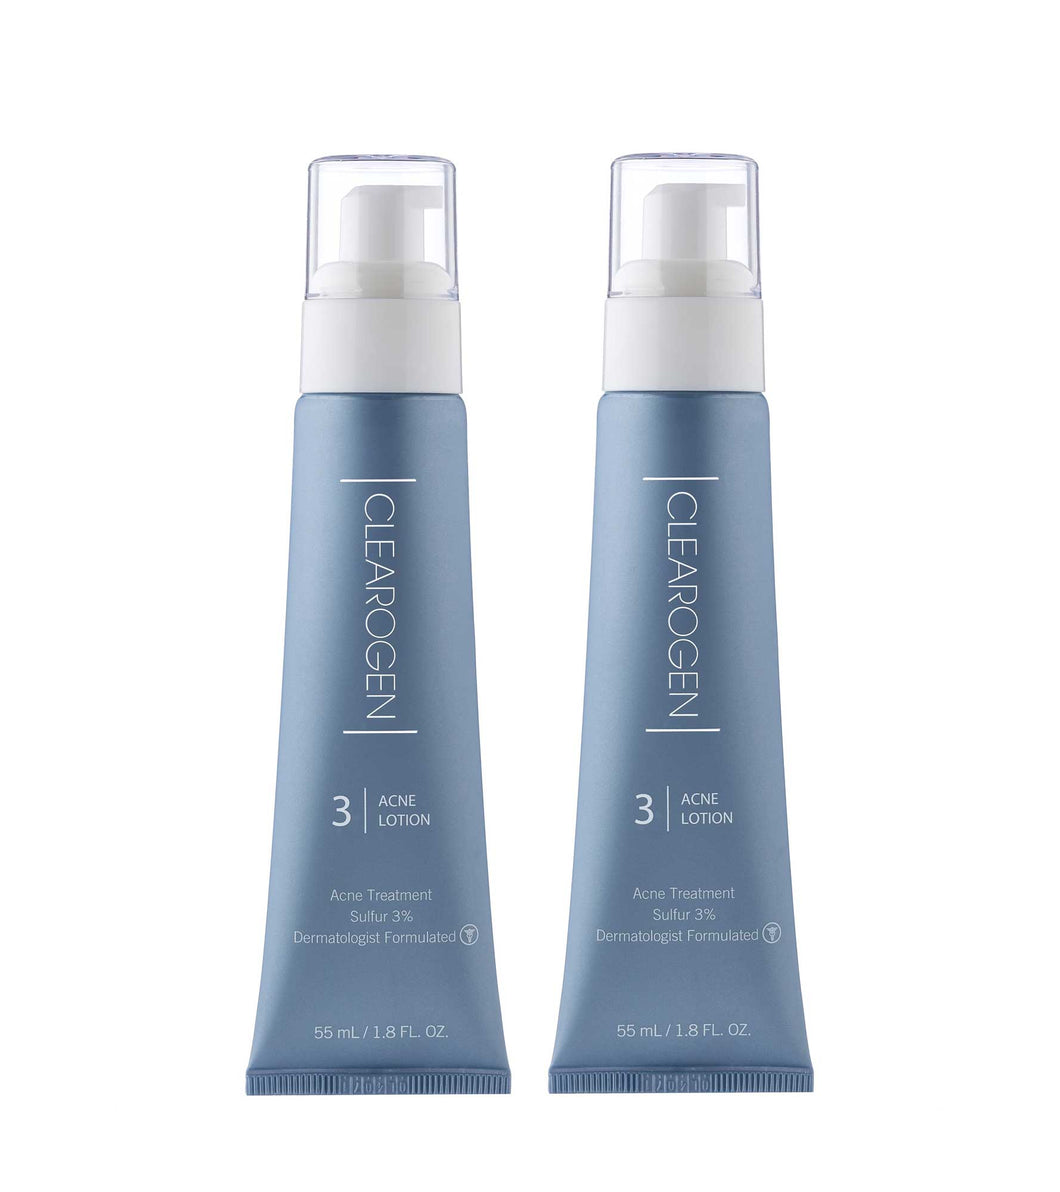 Clearogen Sensitive Skin Acne Lotion (Double Pack) - Clearogen